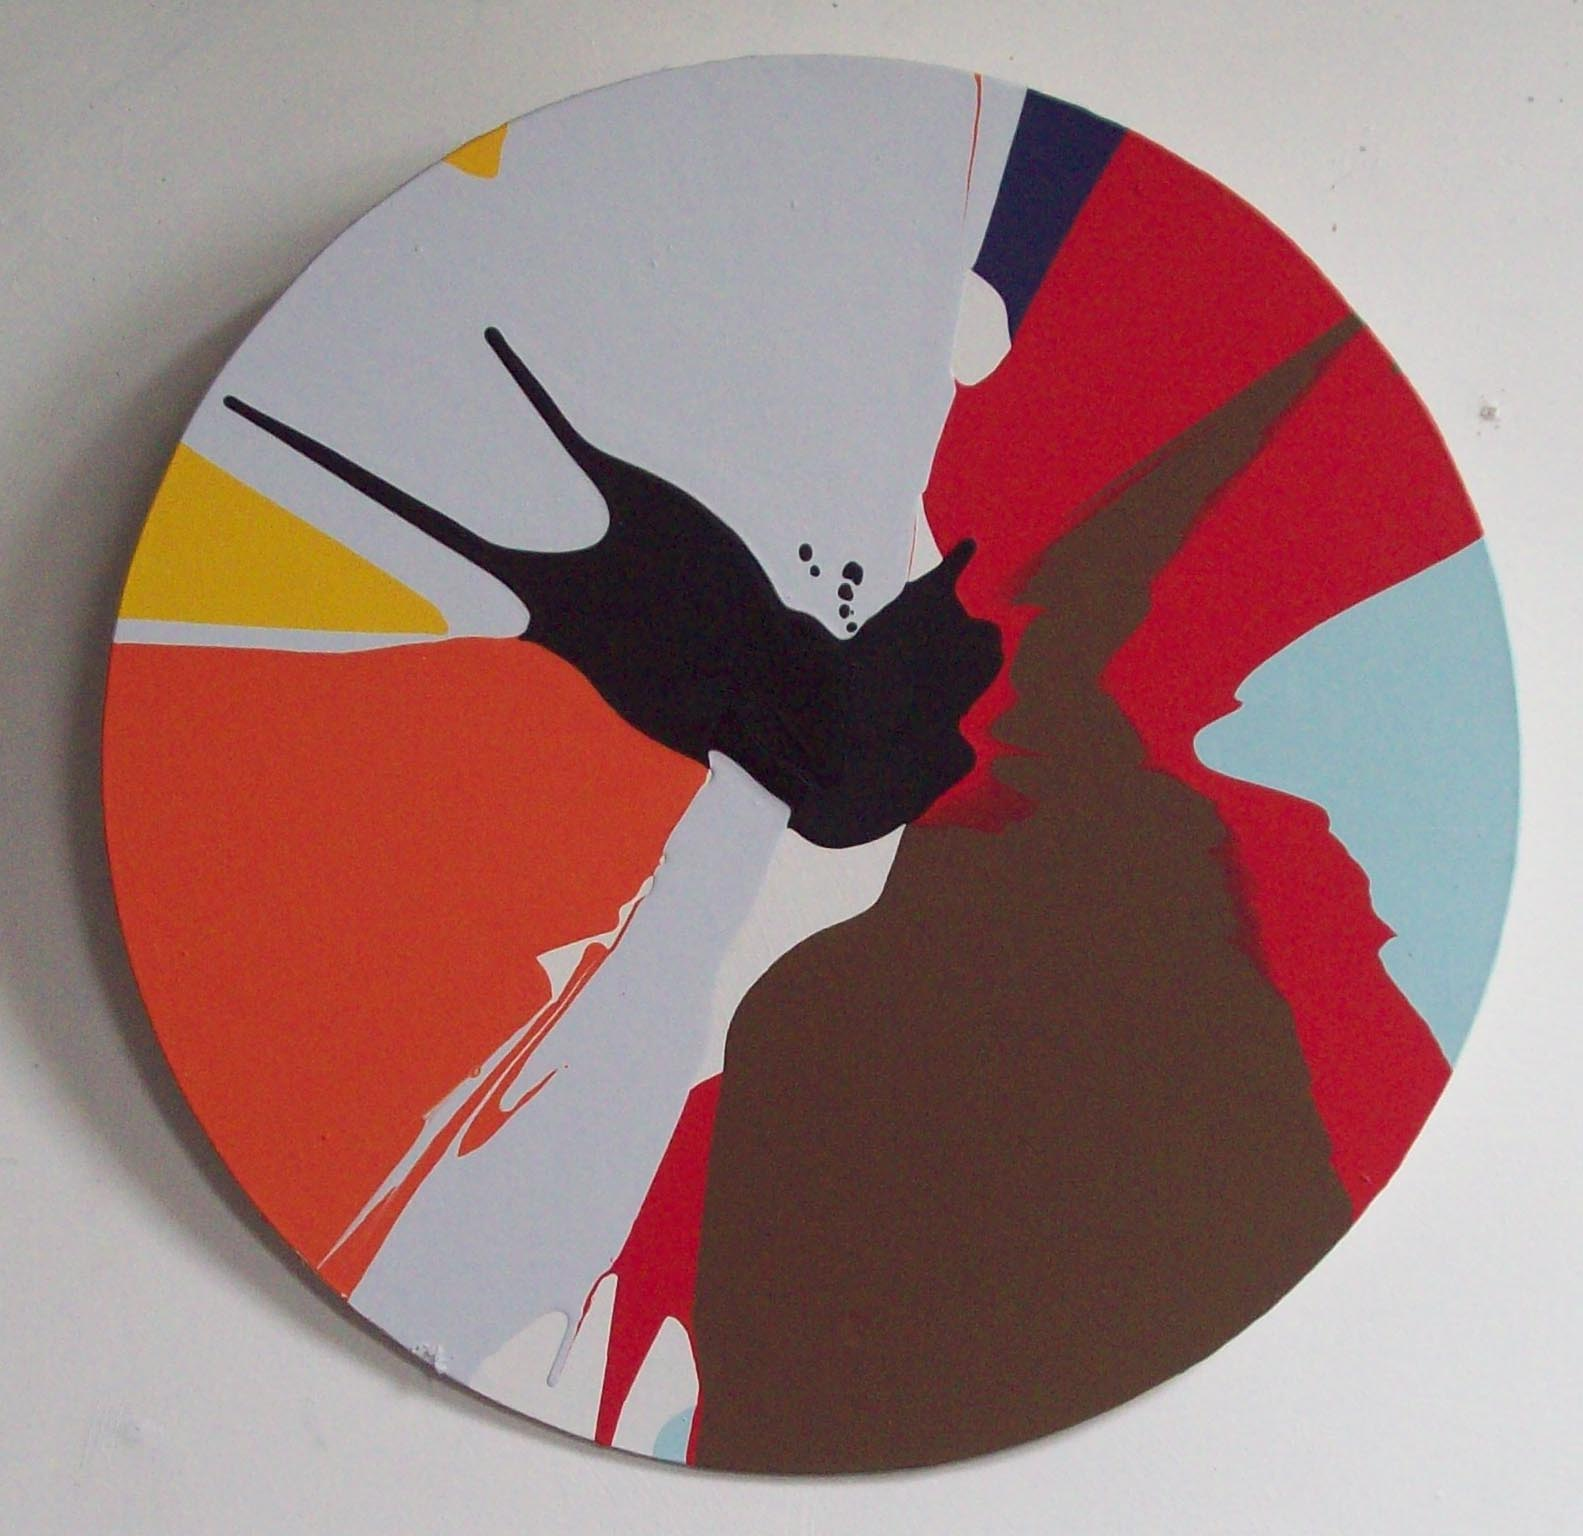 catalogue photo of a spin painting by alan dedman